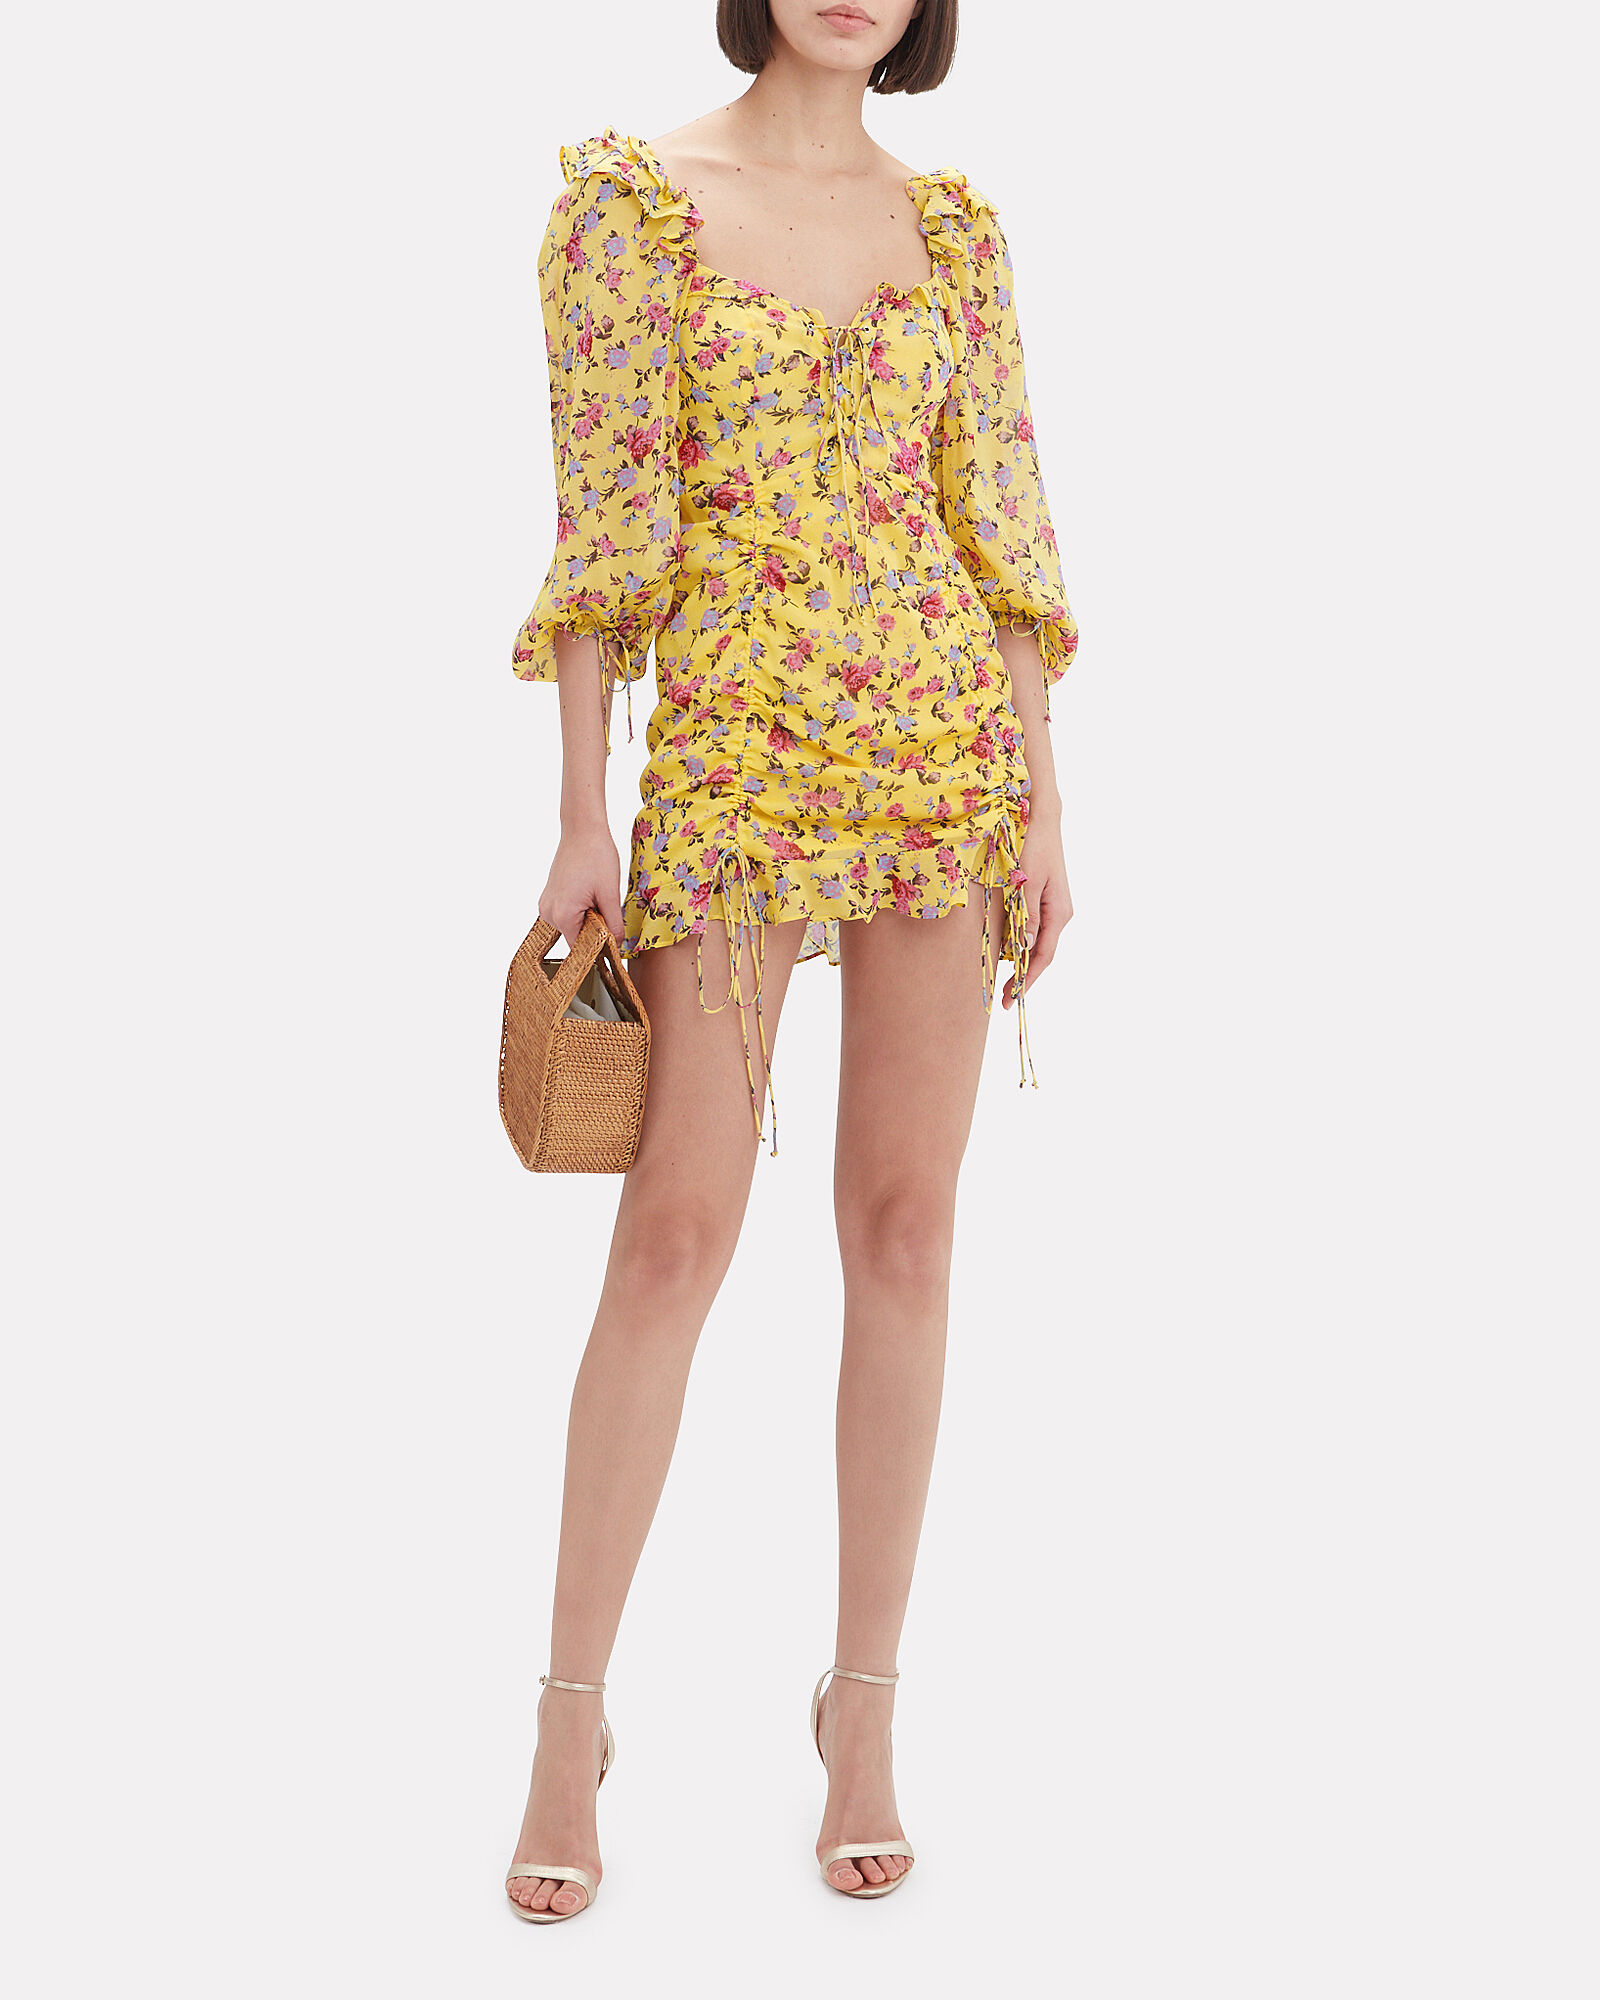 Beaumont Floral Silk Mini Dress, YELLOW, hi-res